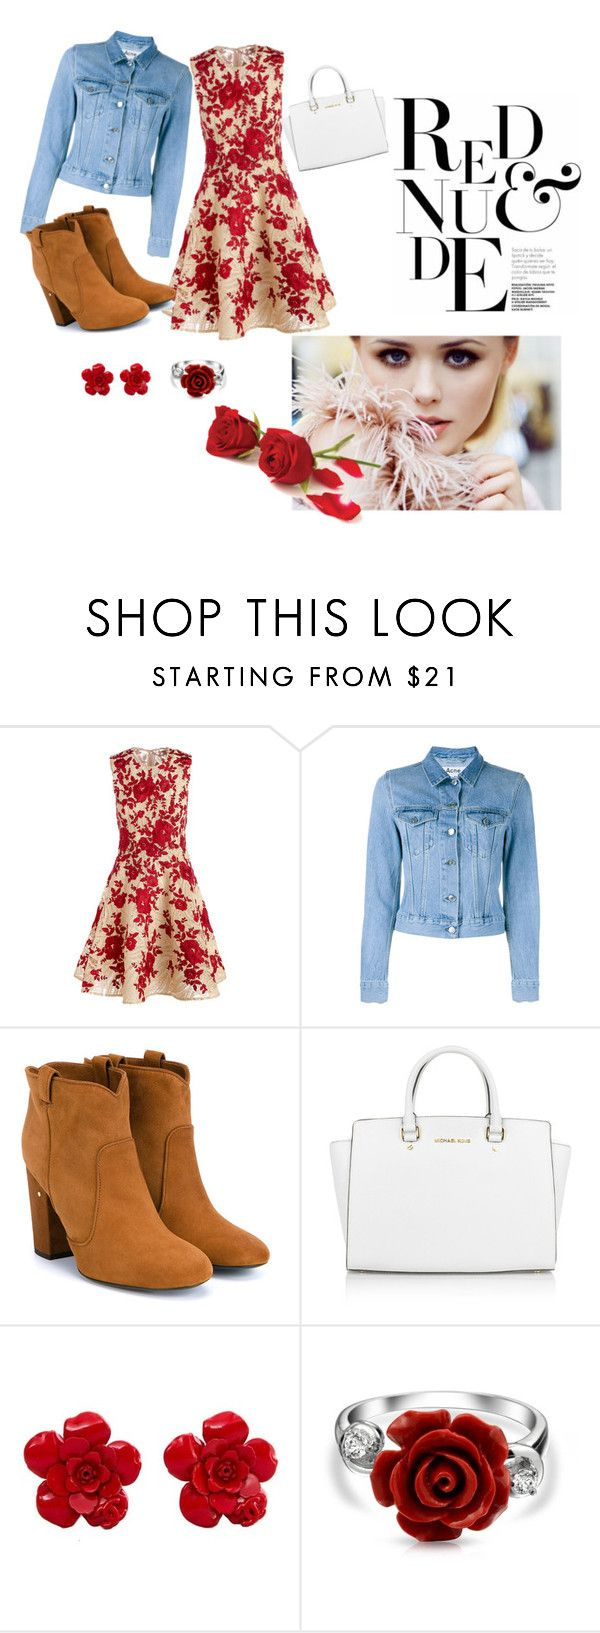 """""""Red roses"""" by love666x on Polyvore featuring moda, Naeem Khan, Acne Studios, Laurence Dacade, Michael Kors, Chanel y Bling Jewelry"""